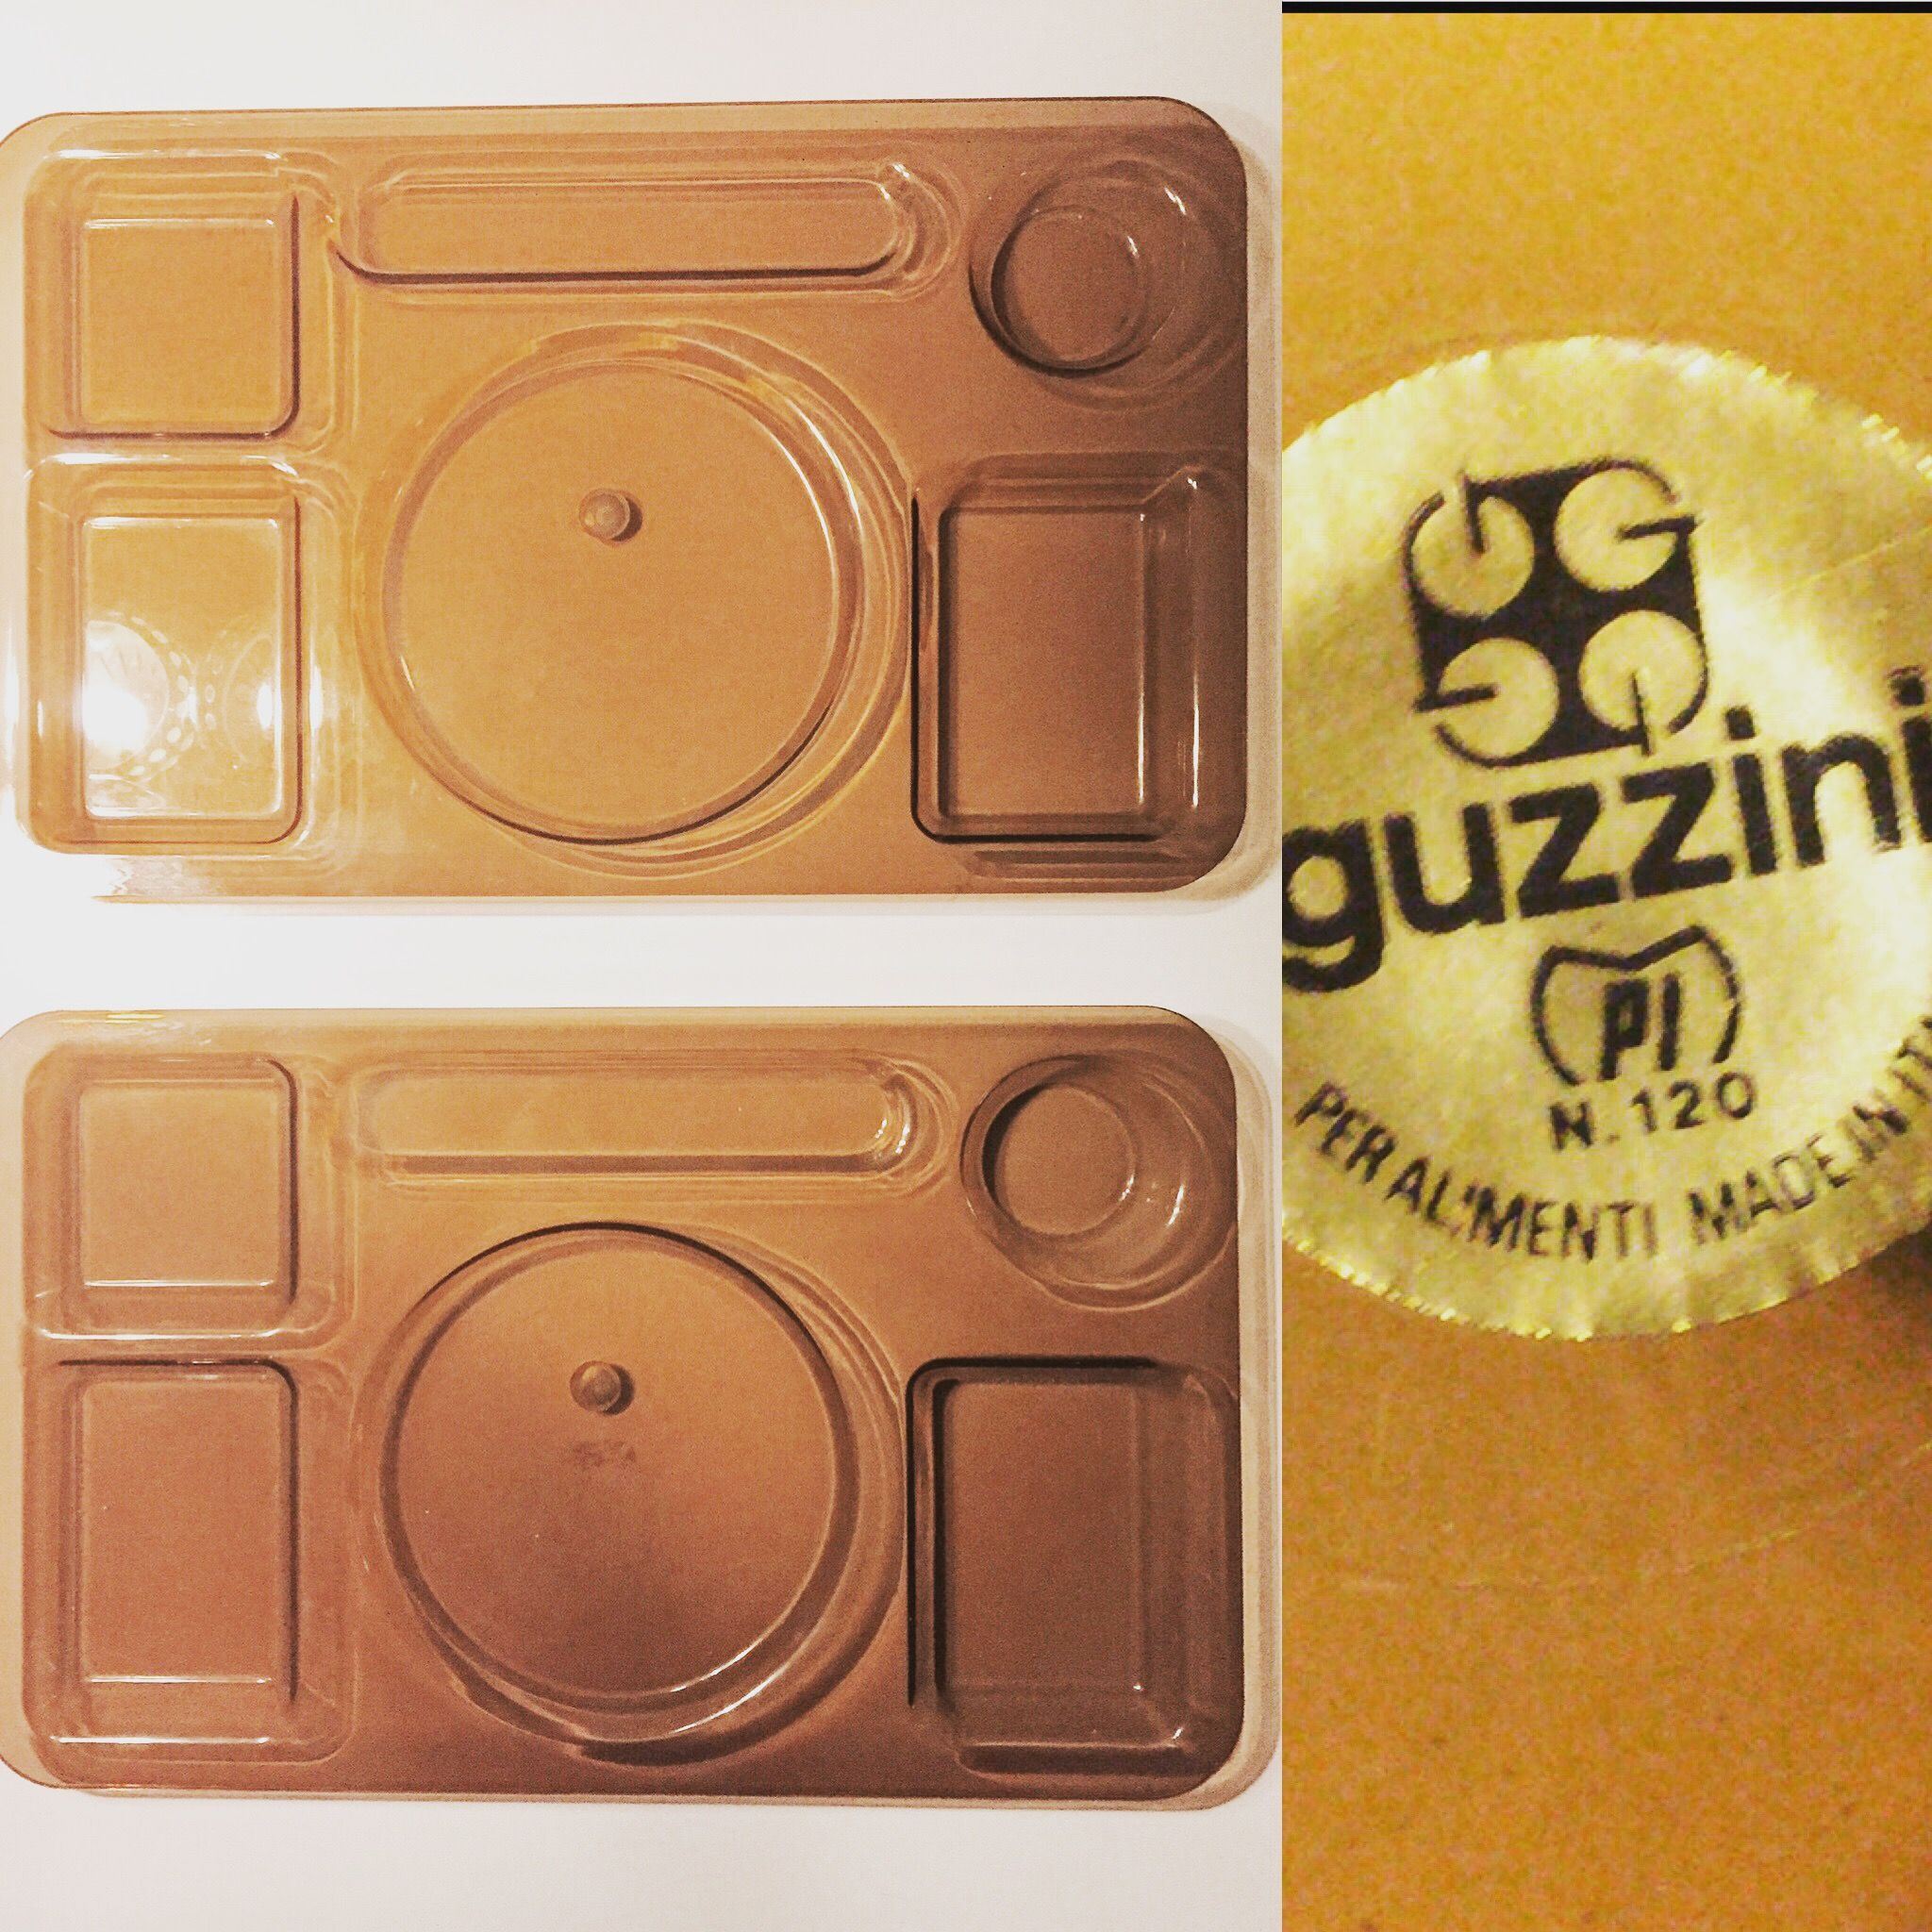 GOOD GANGA  Two vintage serving trays, food trays (What do you call these? Anyone?) in brown smoke plexiglass, Guzzini, Italy.  #Guzzini #GuzziniPerAlimenti  #smokeglass #plexiglass  #vintage #seventies #plastic  Join Good Ganga on Facebook.